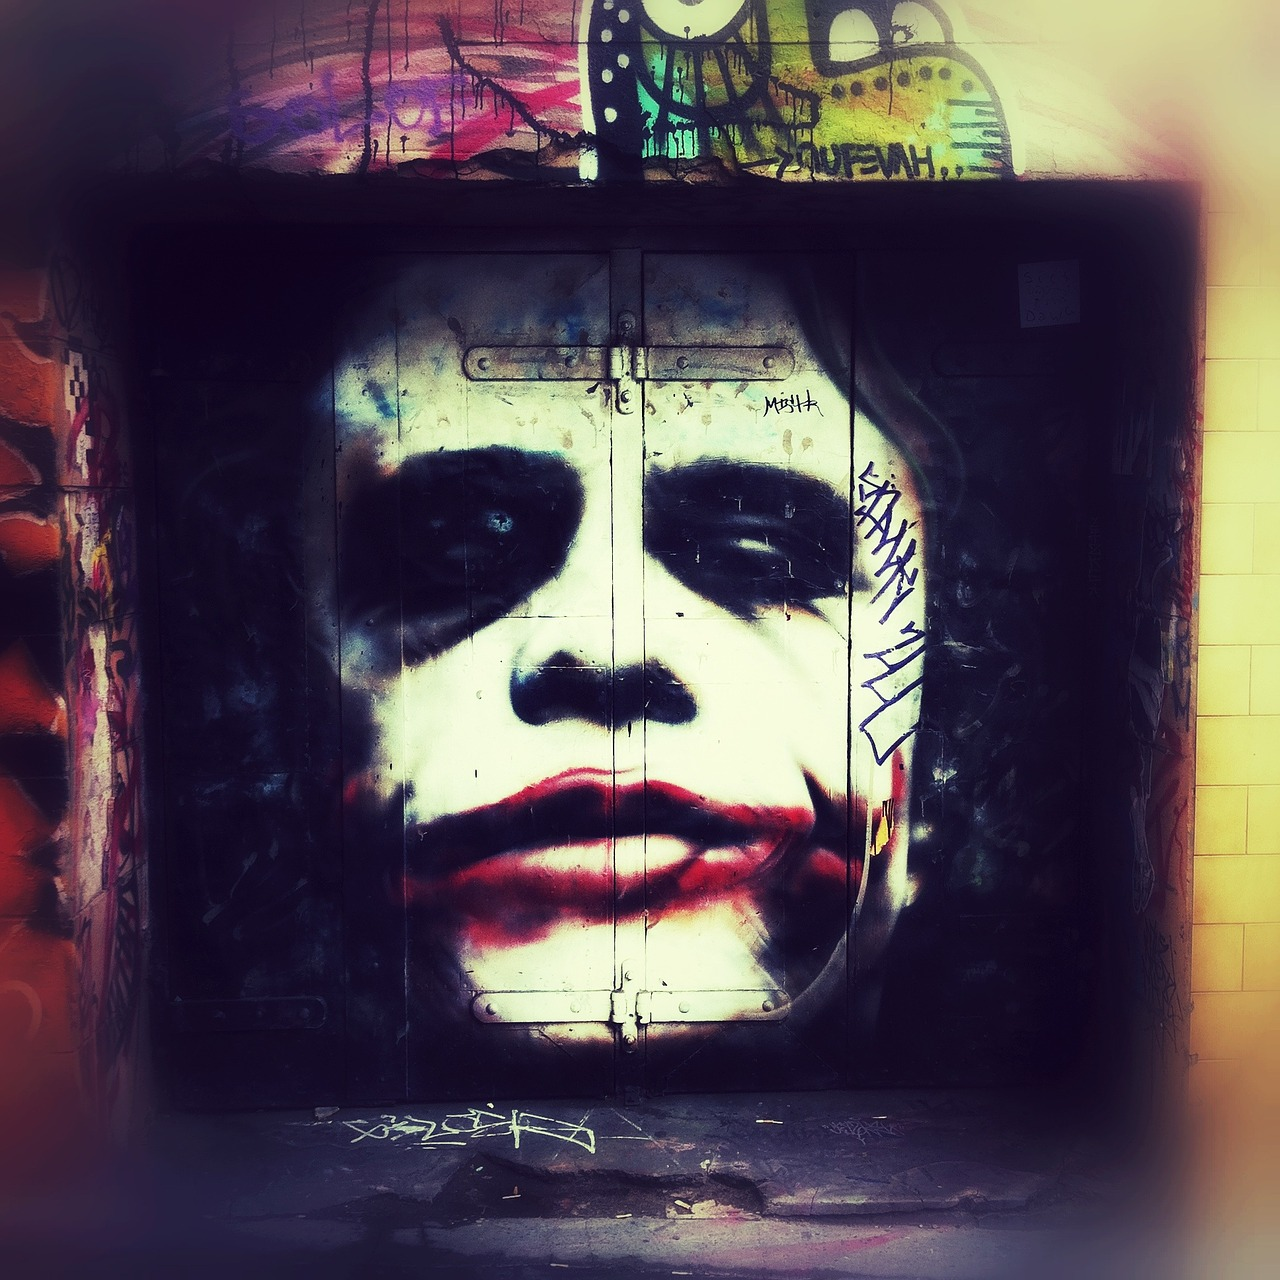 batman graffiti art free photo